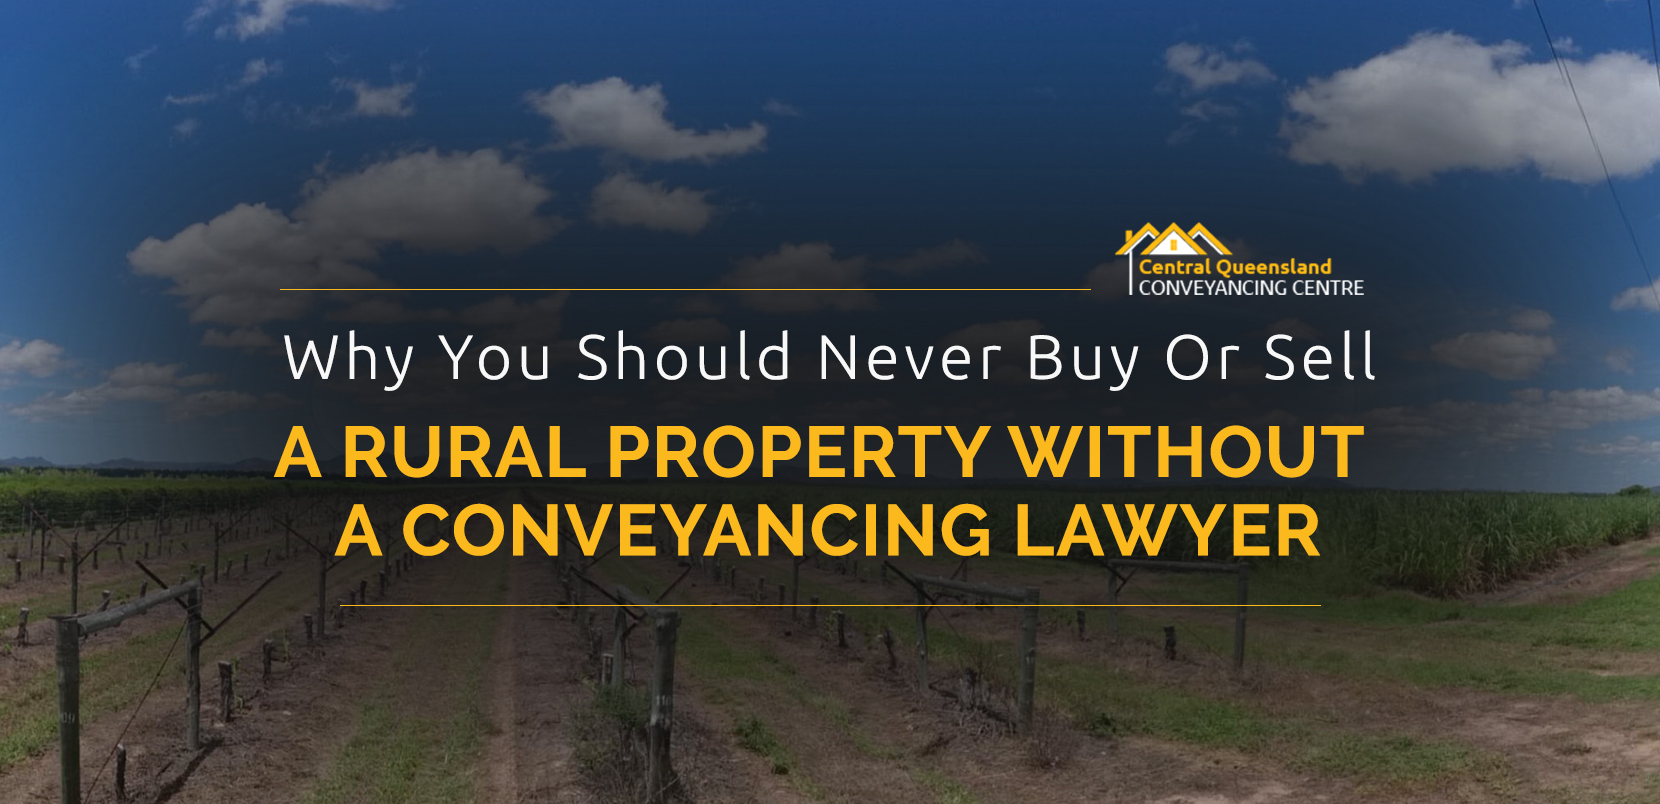 Why You Should Never Buy Or Sell a Property Without a Conveyancing Lawyer